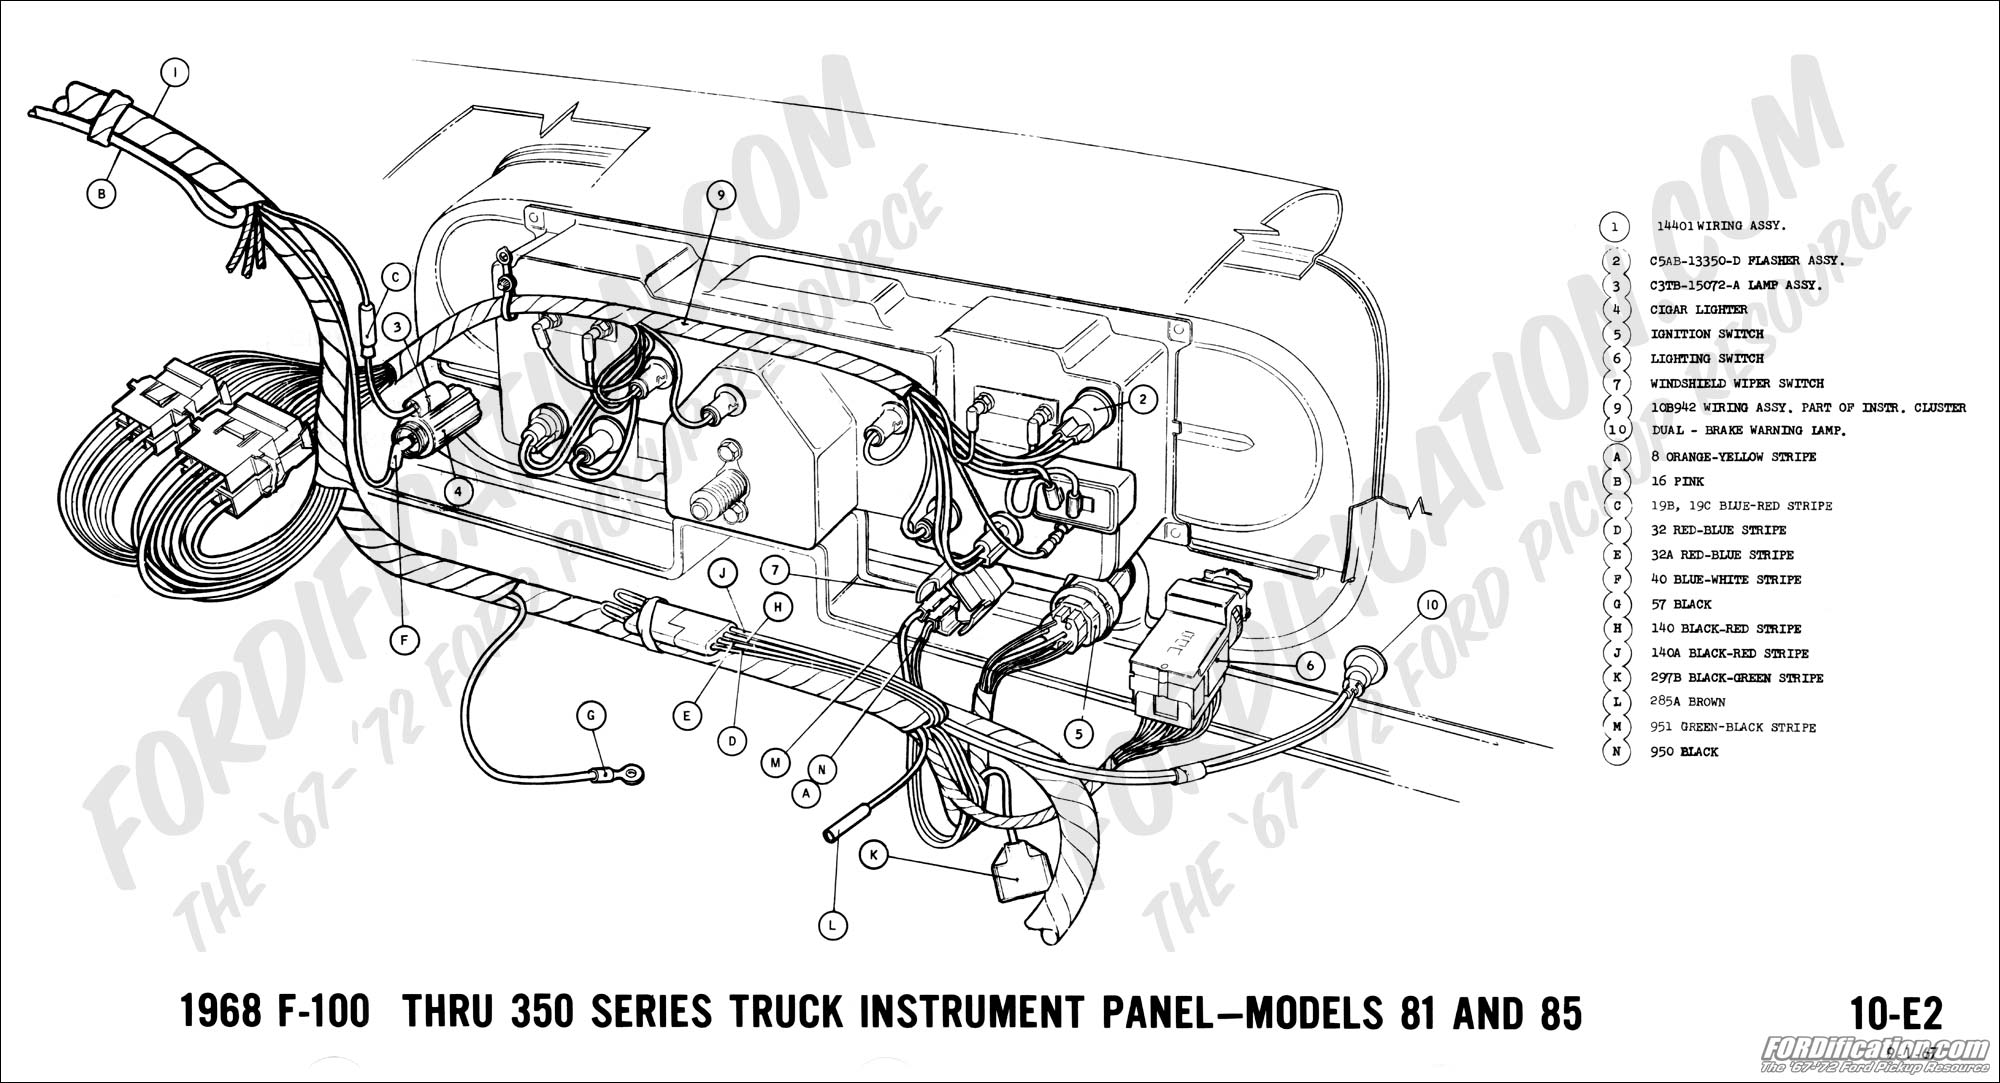 68 Ford Custom 500 Wiring Diagram 33 Images Galaxy 04 Truck Technical Drawings And Schematics Section H 1968 Galaxie